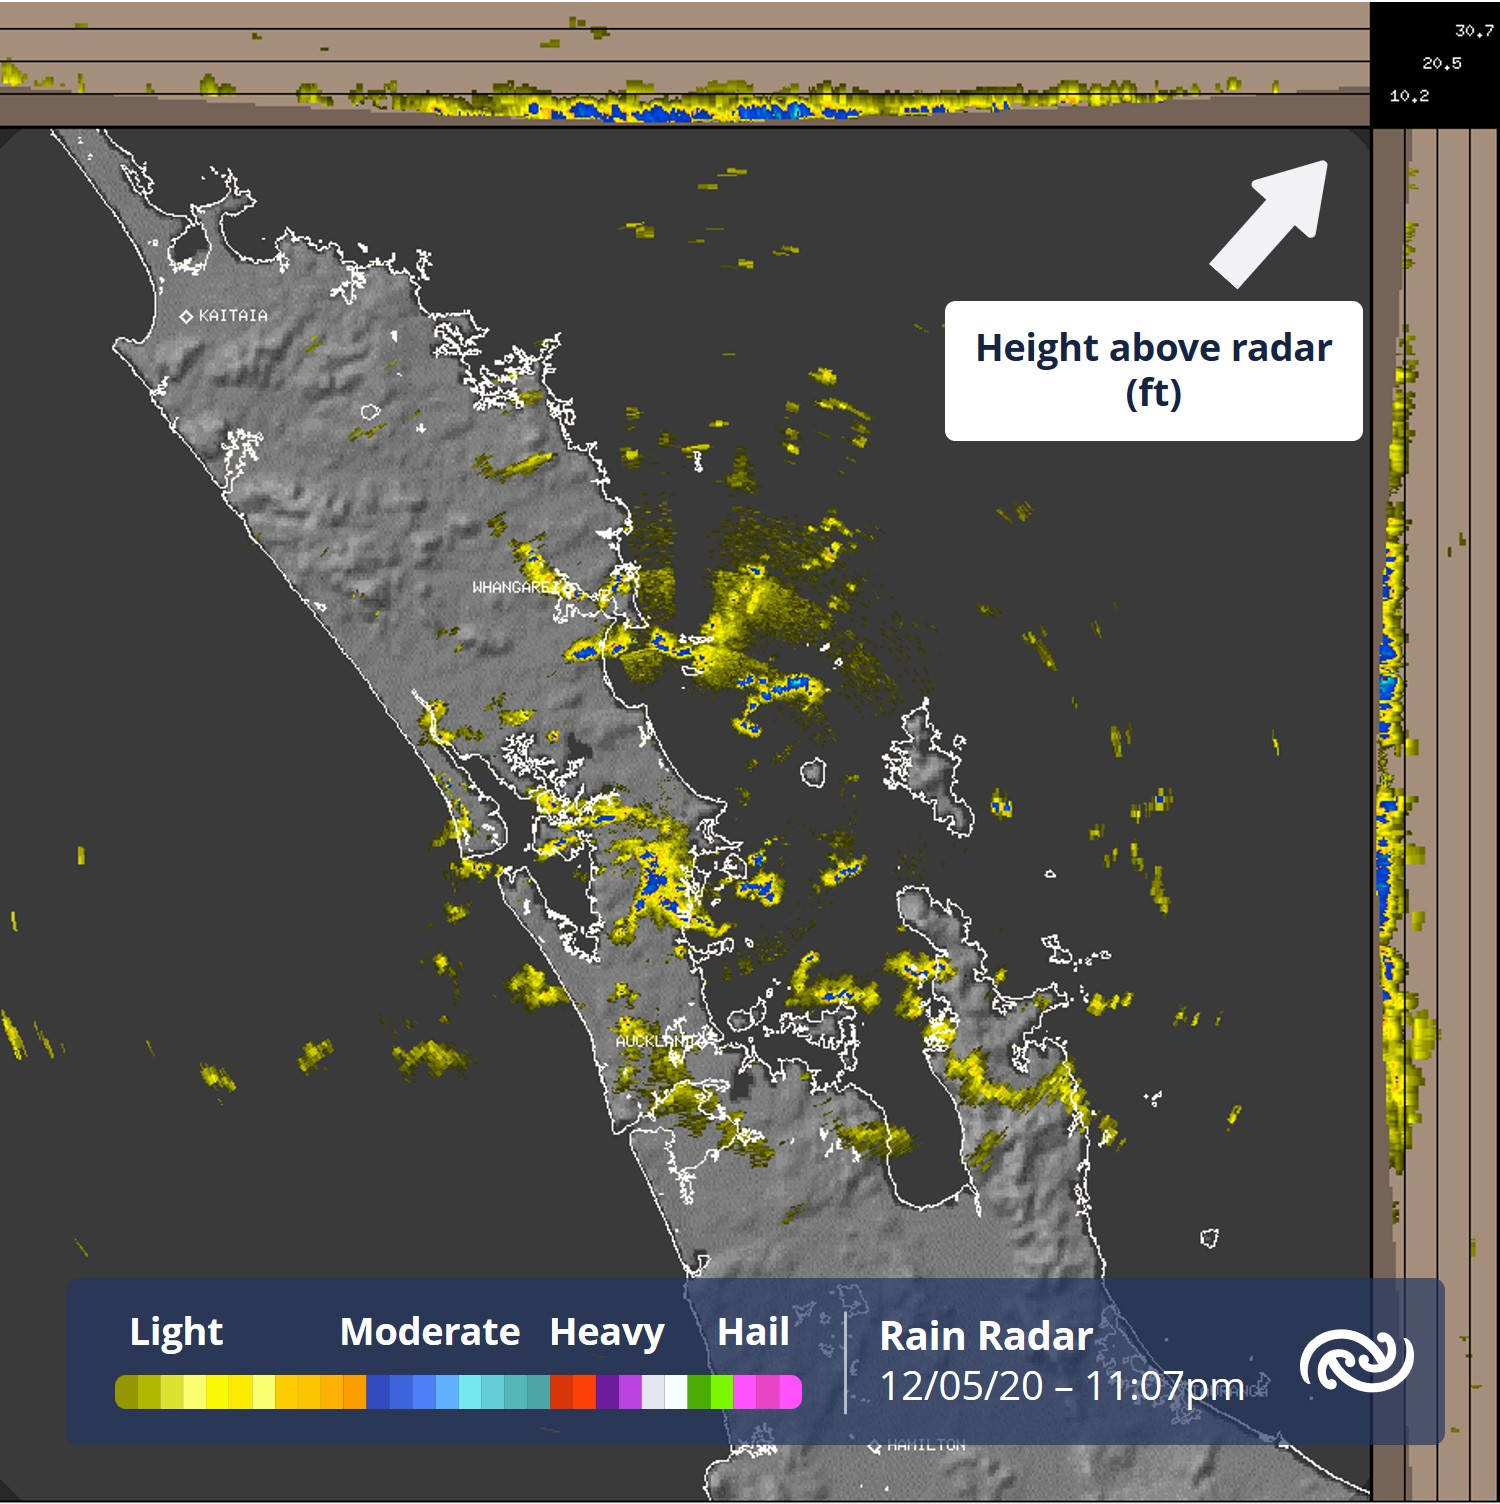 How 'heavy' a shower will be depends a lot on how 'tall' the cloud (and uplift) producing the shower is. The scale in the radar image is one of the tools that help us meteorologists know that showers currently over the Auckland region are light as they are 'short' or 'squat'. ^AC